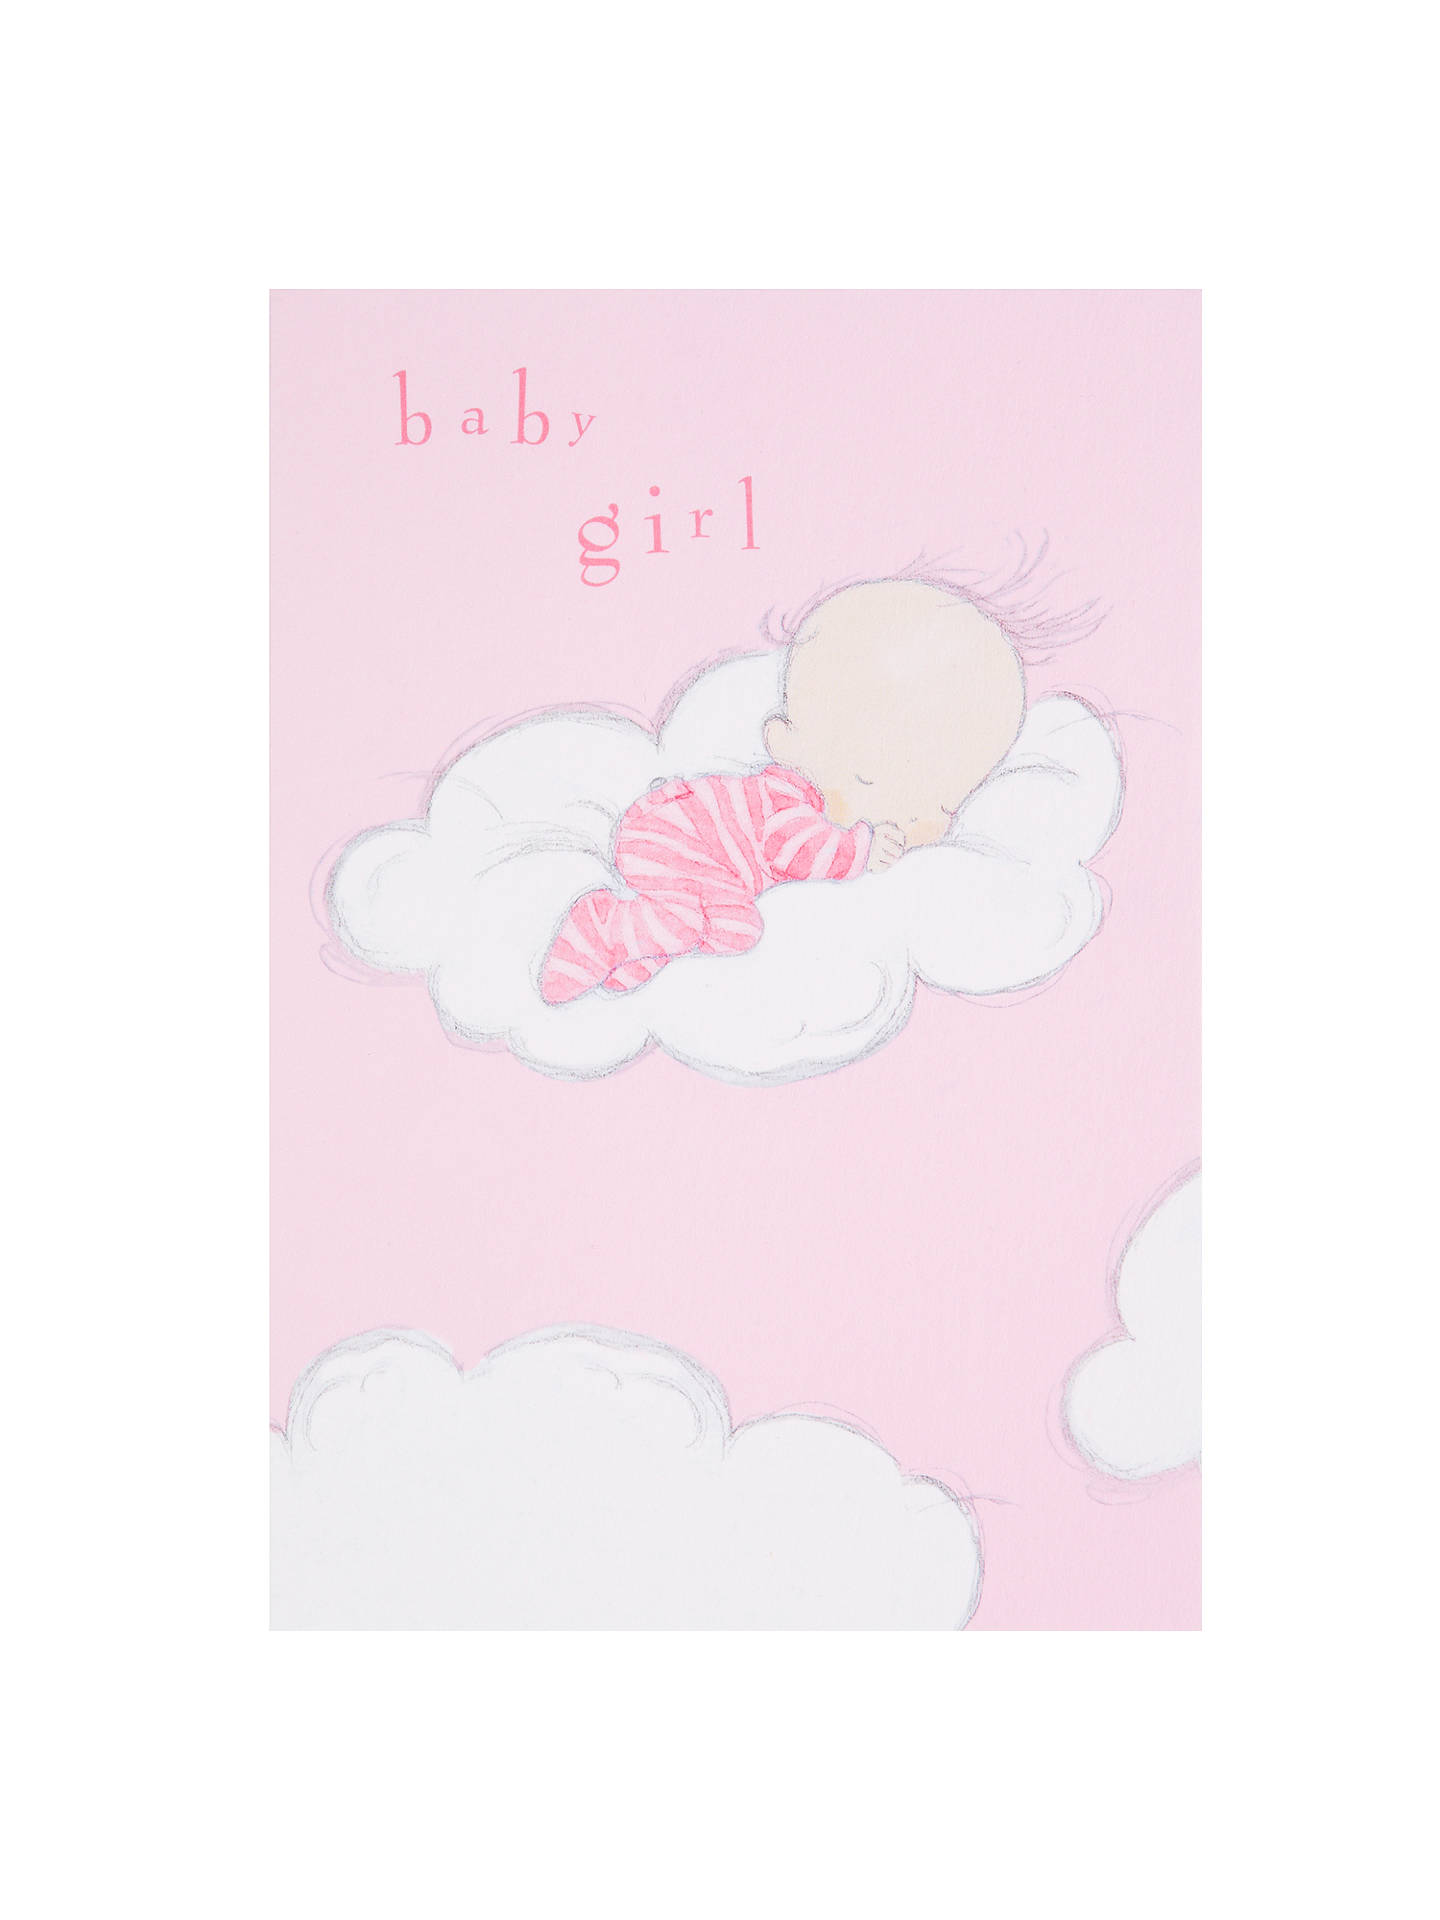 Woodmansterne sleeping on fluffy cloud new baby girl greeting card buywoodmansterne sleeping on fluffy cloud new baby girl greeting card online at johnlewis m4hsunfo